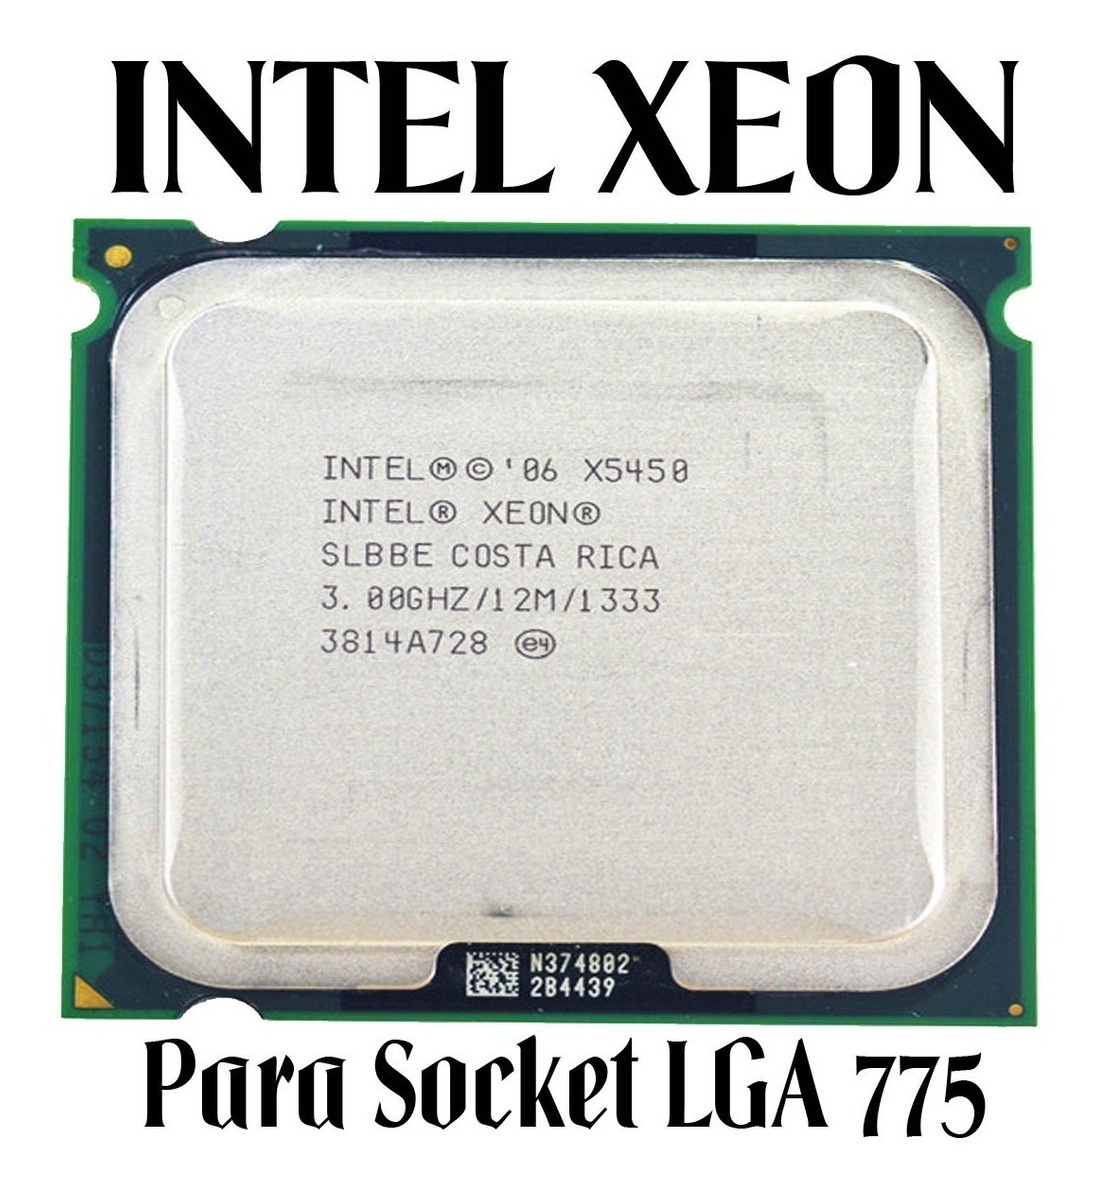 Kit Gamer Placa Mãe + Xeon 5450 + 8gb + Cooler ( Novo )